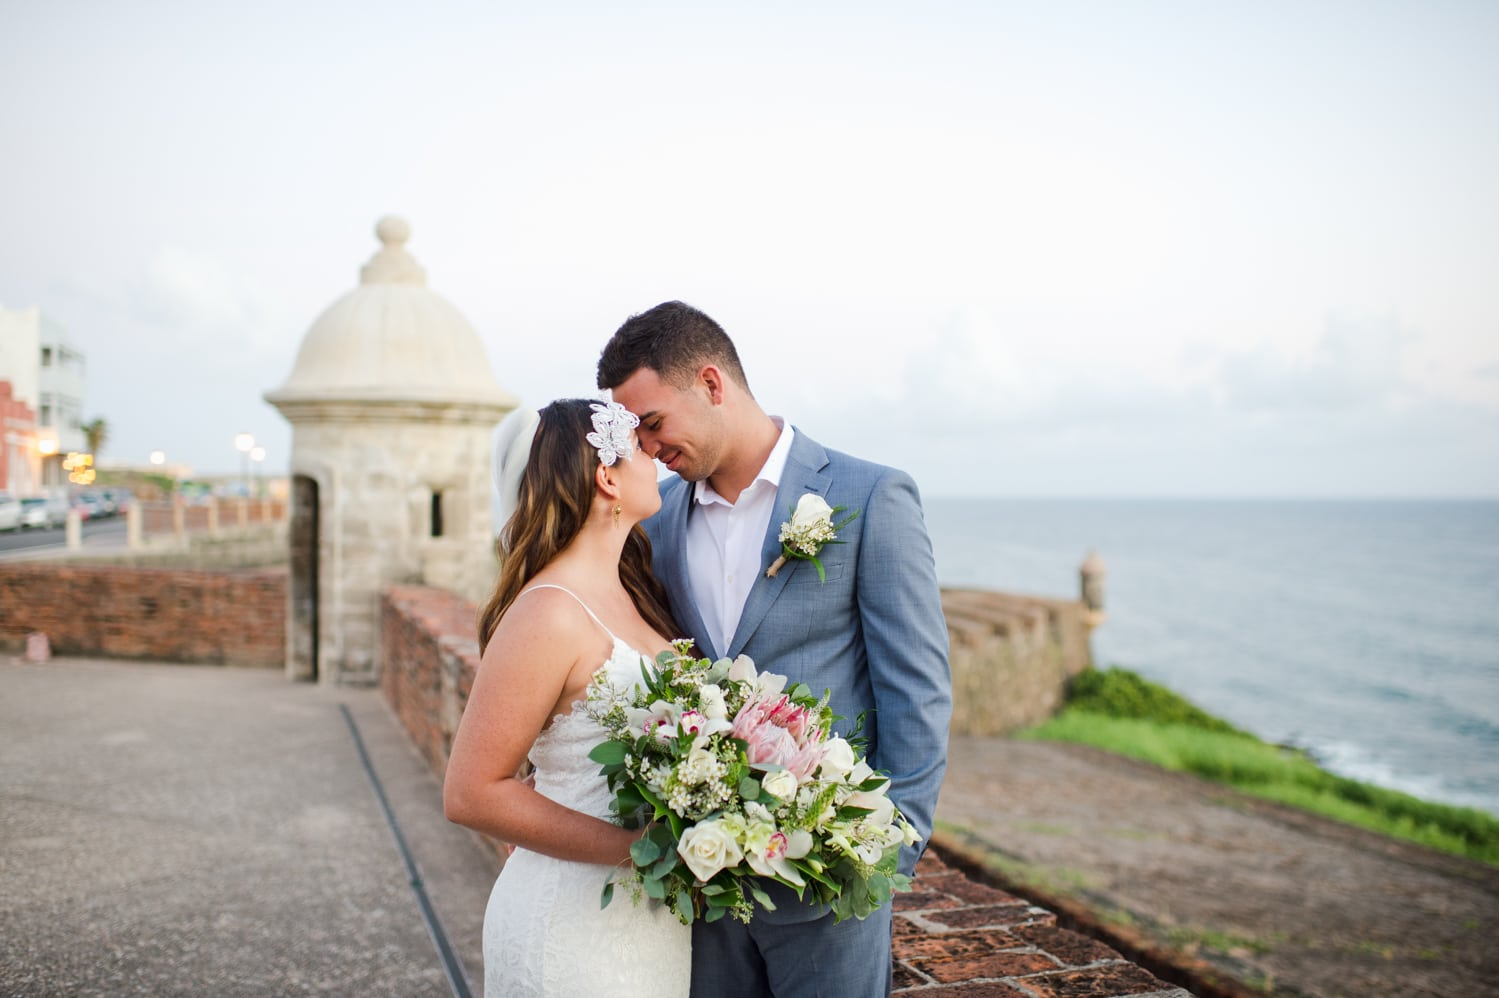 Sunrise elopement photography by Camille Fontanez at El Morro Fortress